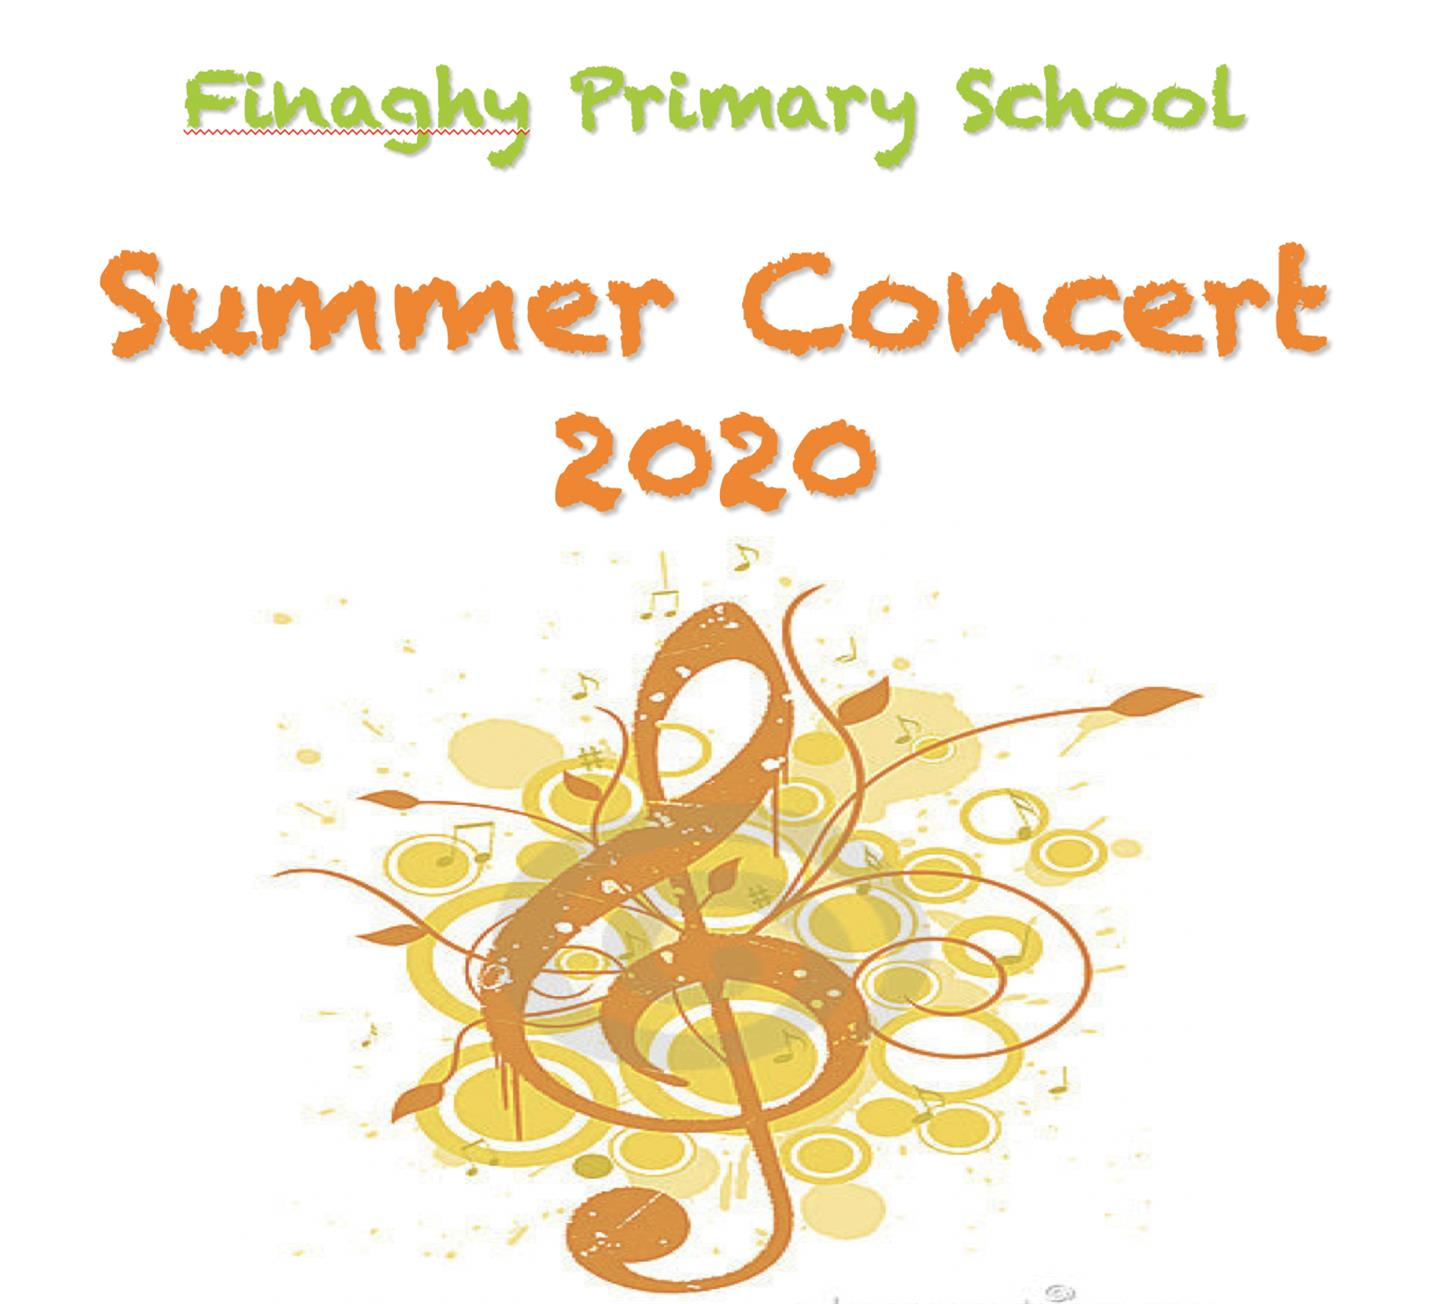 Finaghy Primary School Summer Concert